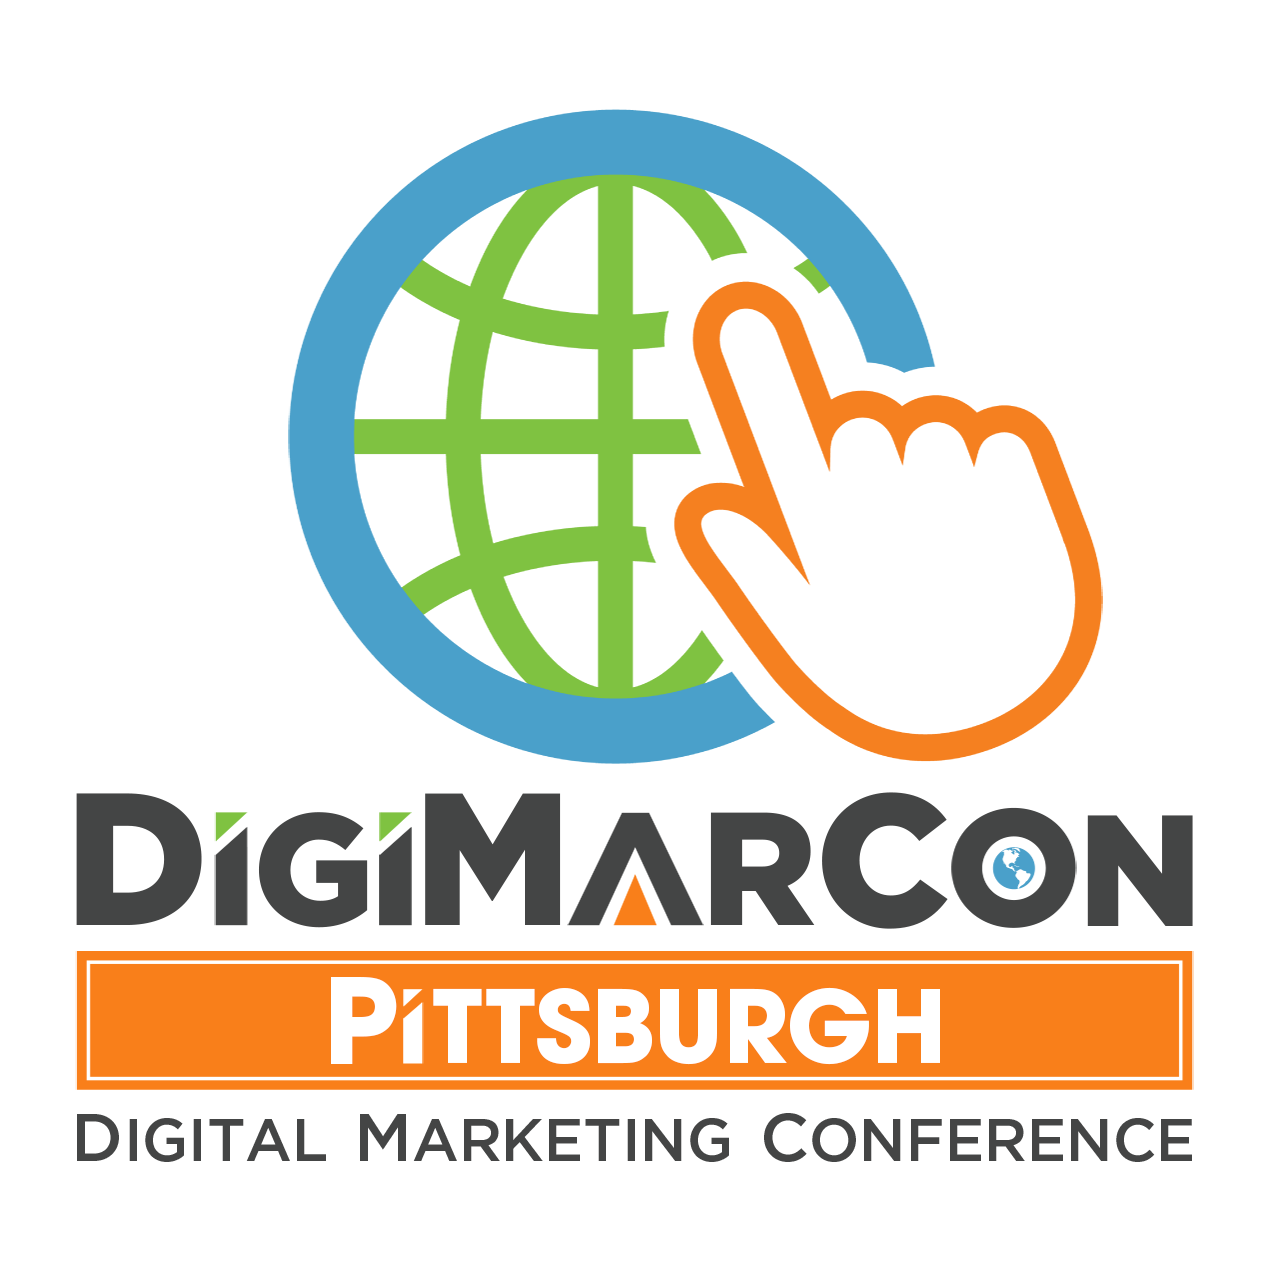 Pittsburgh Digital Marketing, Media & Advertising Conference